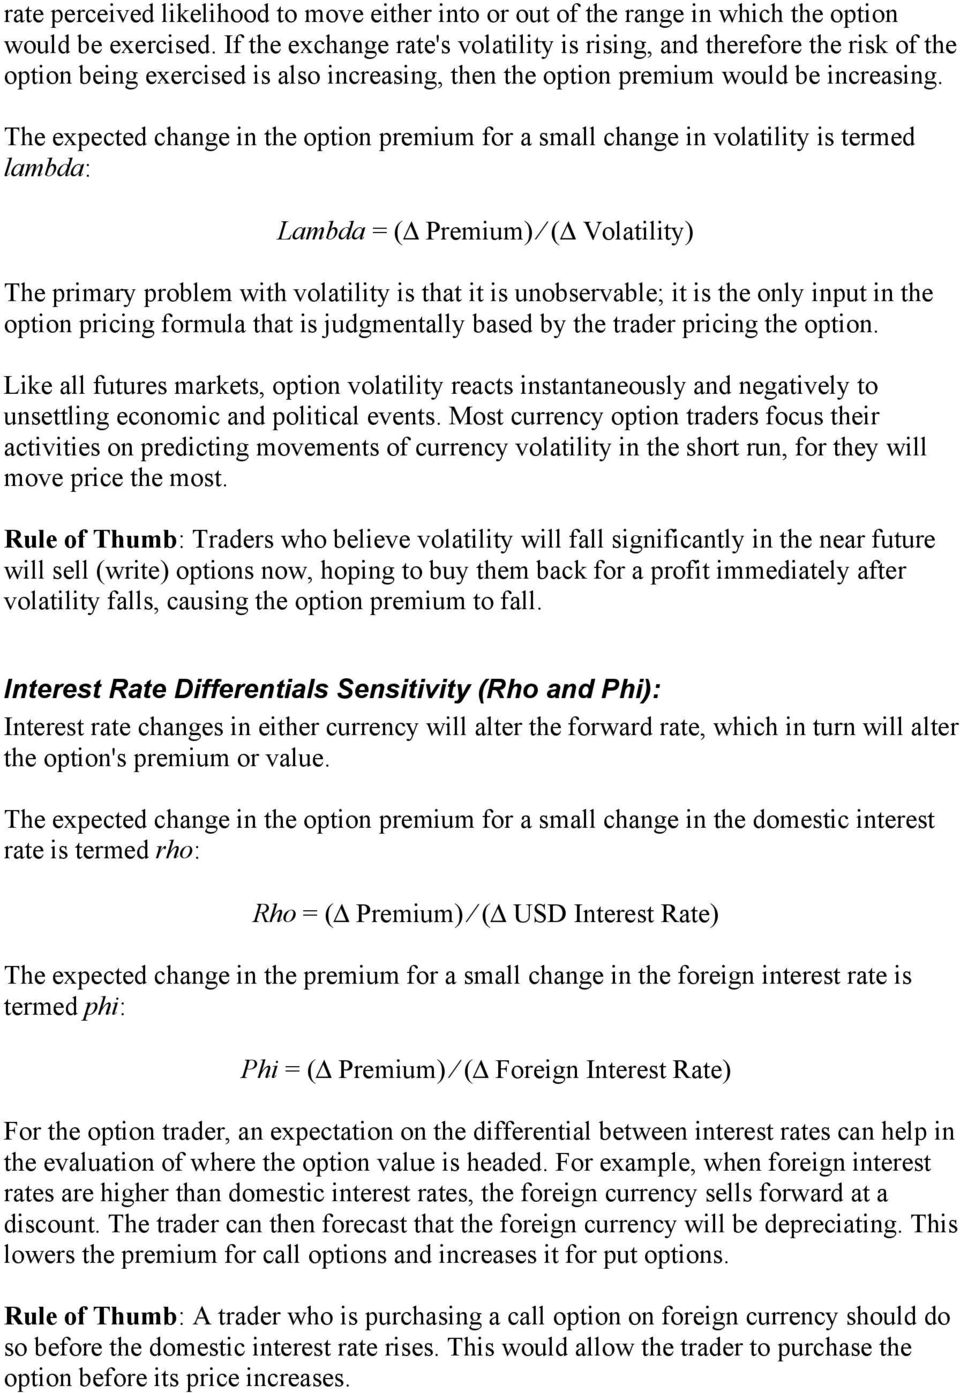 he expected change in the option premium for a small change in volatility is termed lambda: Lambda = ( Premium) ( Volatility) he primary problem with volatility is that it is unobservable; it is the